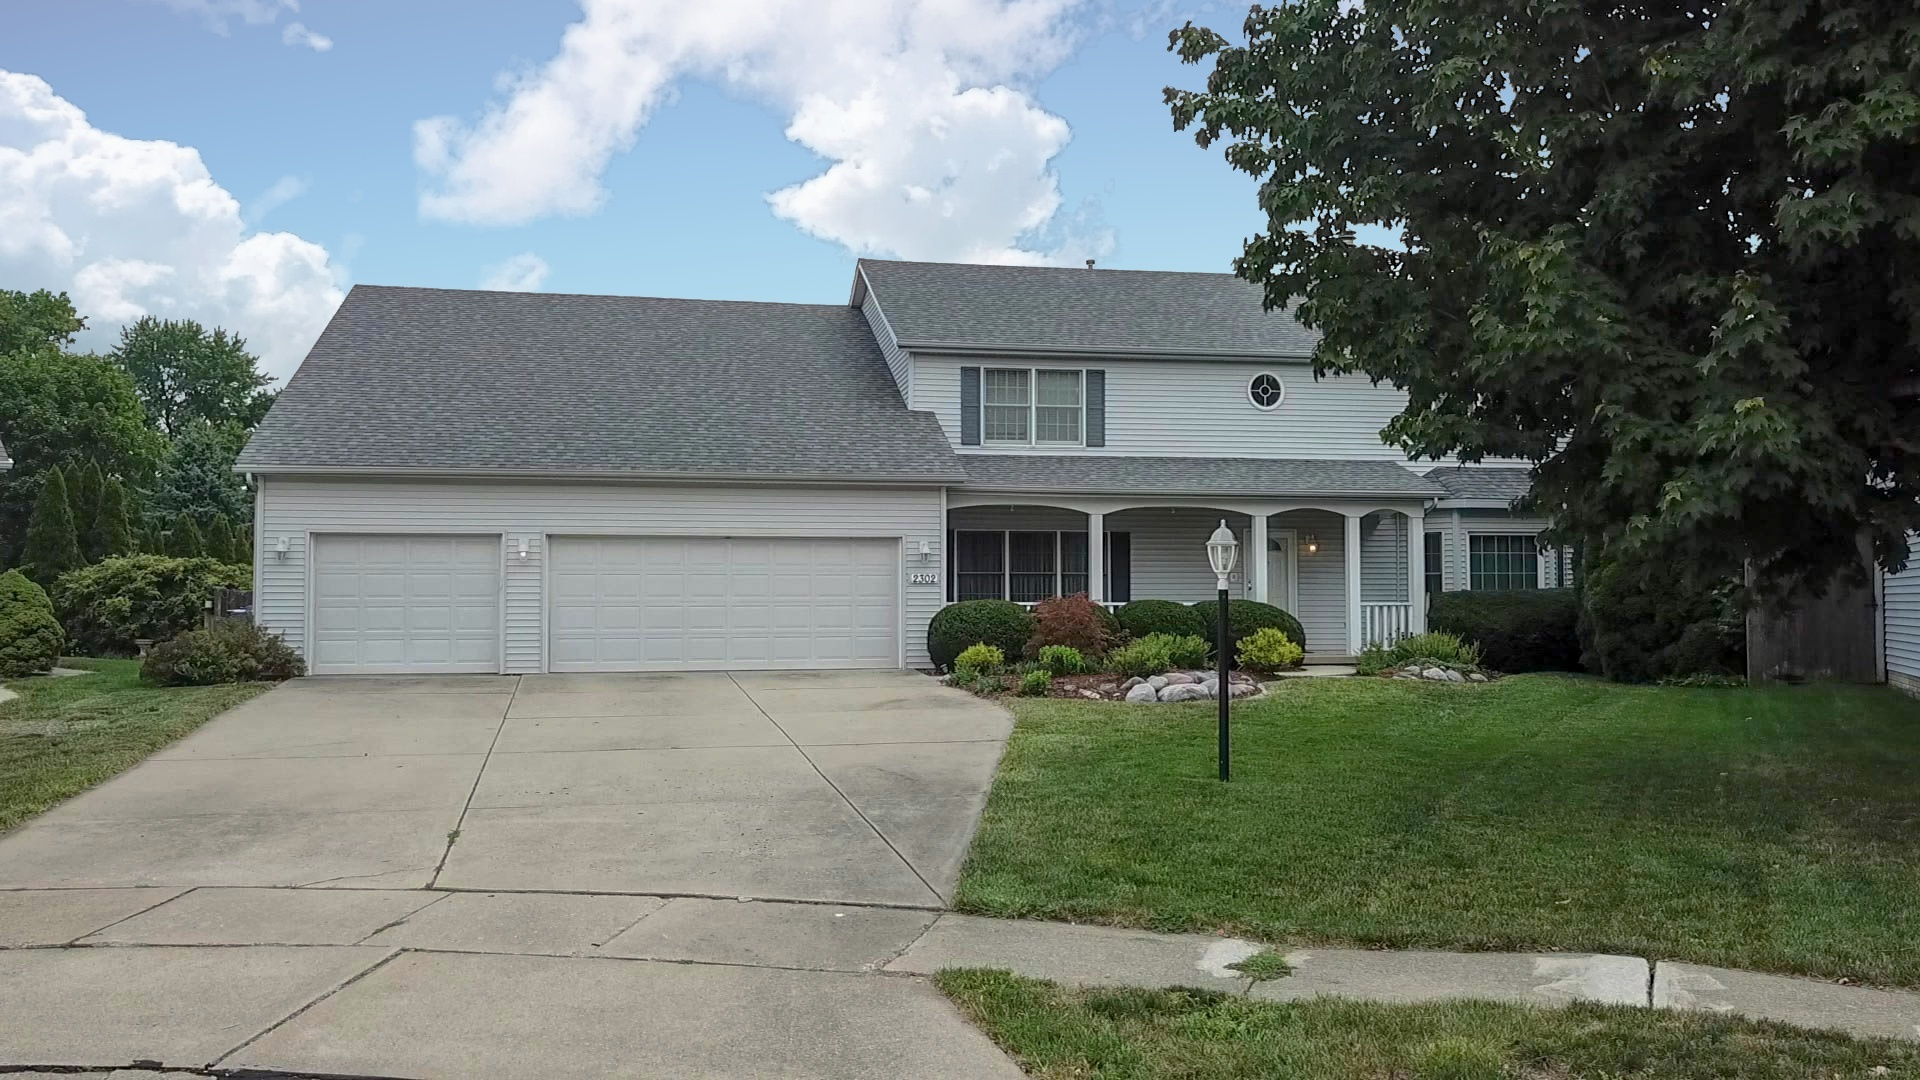 2302 Firethorn Lane, Champaign in Champaign County, IL 61822 Home for Sale